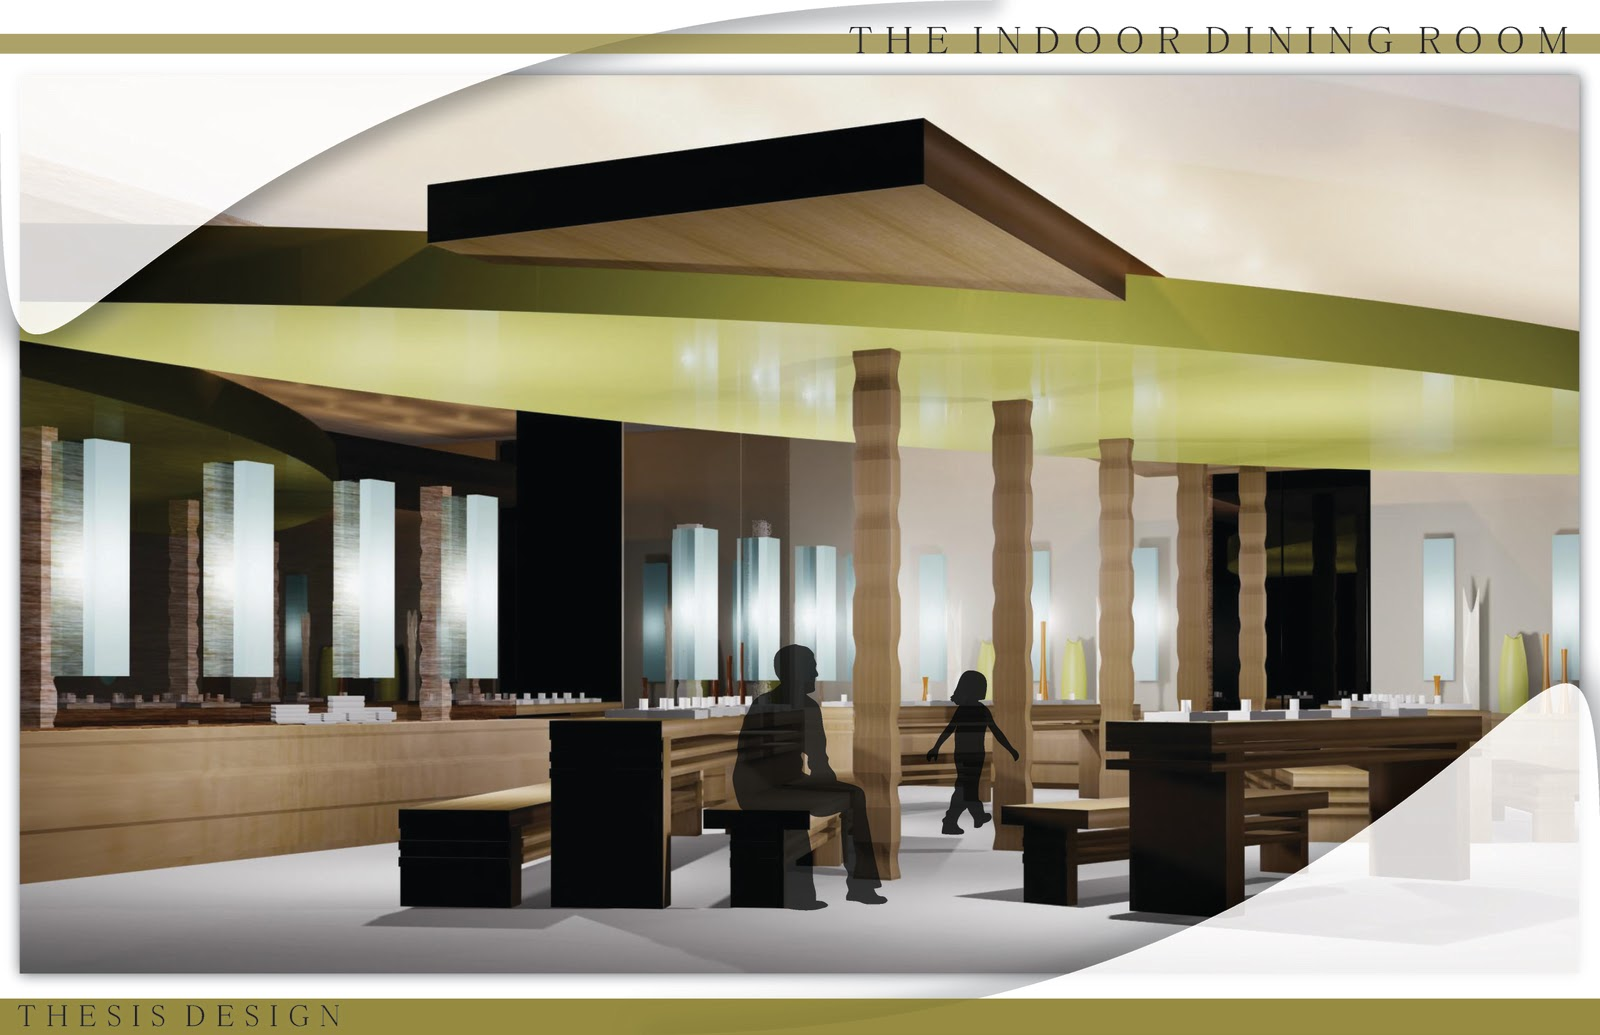 thesis interior design An approach to integrate lighting concepts into interior design studios: a constructivist educational framework a thesis submitted to the department of.